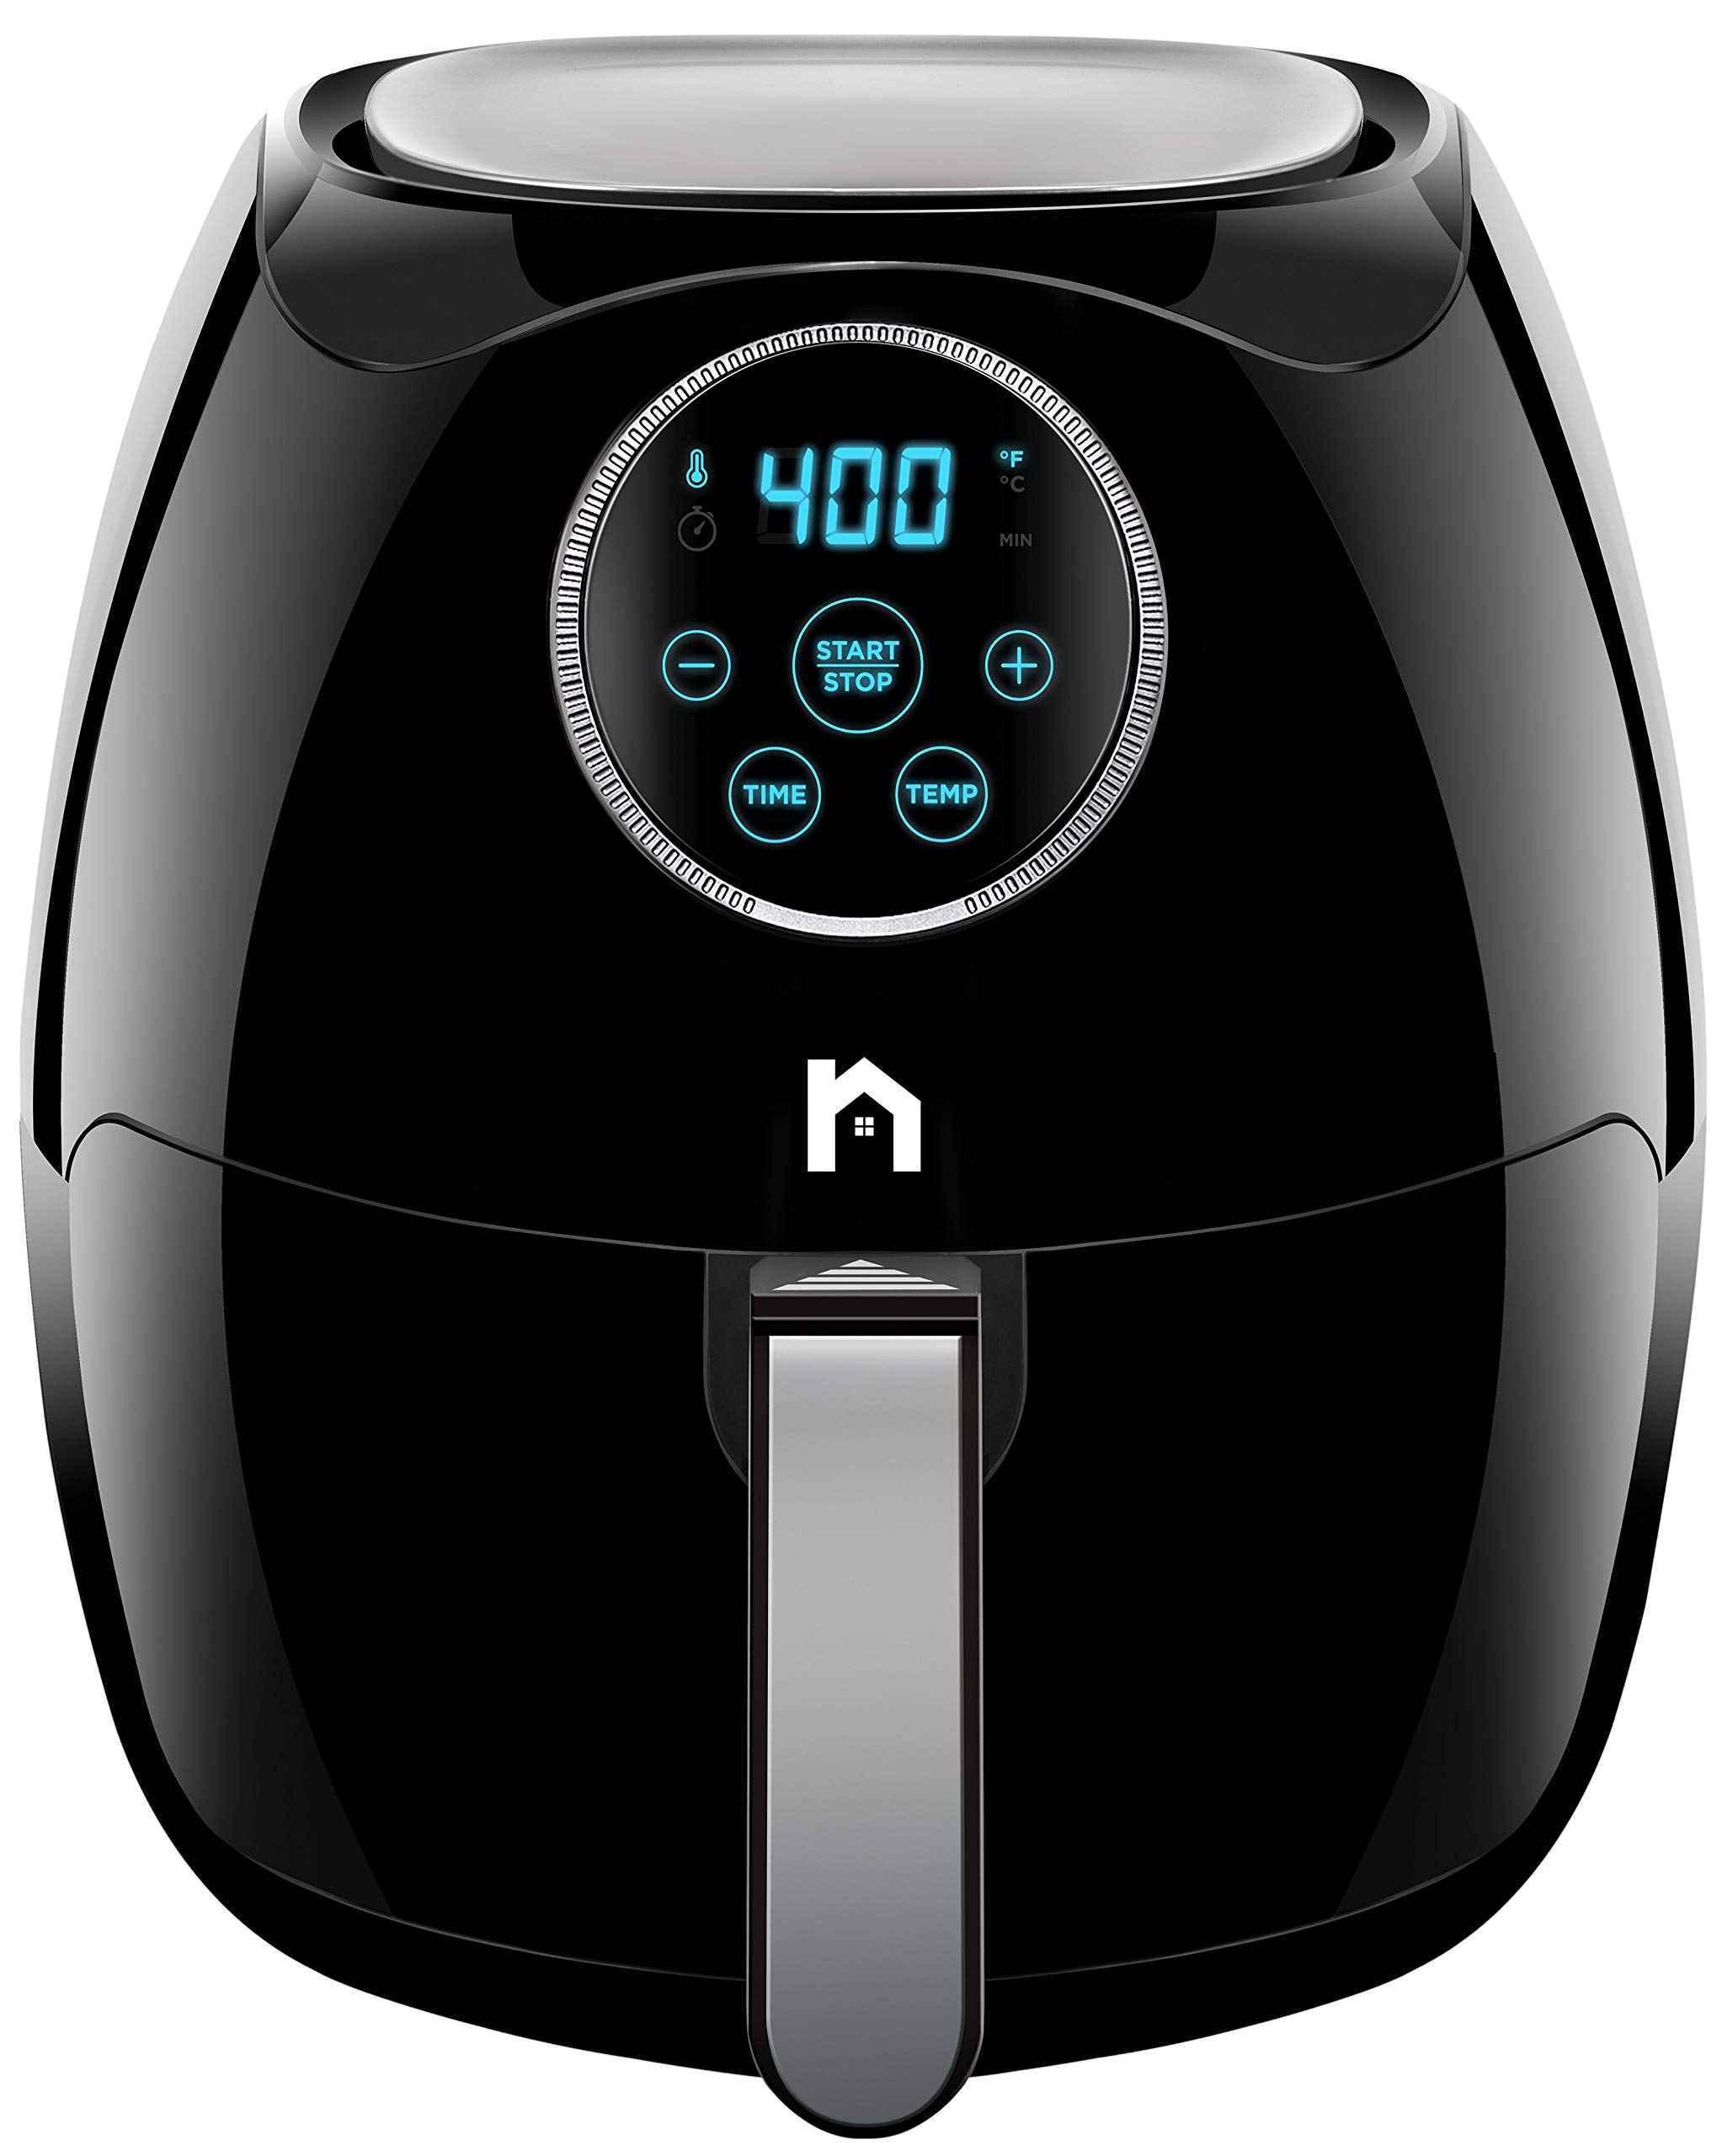 New House Kitchen Digital 6.8 Quart Air Fryer w/ Flat Basket, Oil-Free Touch Screen AirFryer, Dishwasher-Safe Parts, Fast Healthier Food, 60 Min Timer & Auto Shut Off, Extra Large Family Size, Black by New House Kitchen